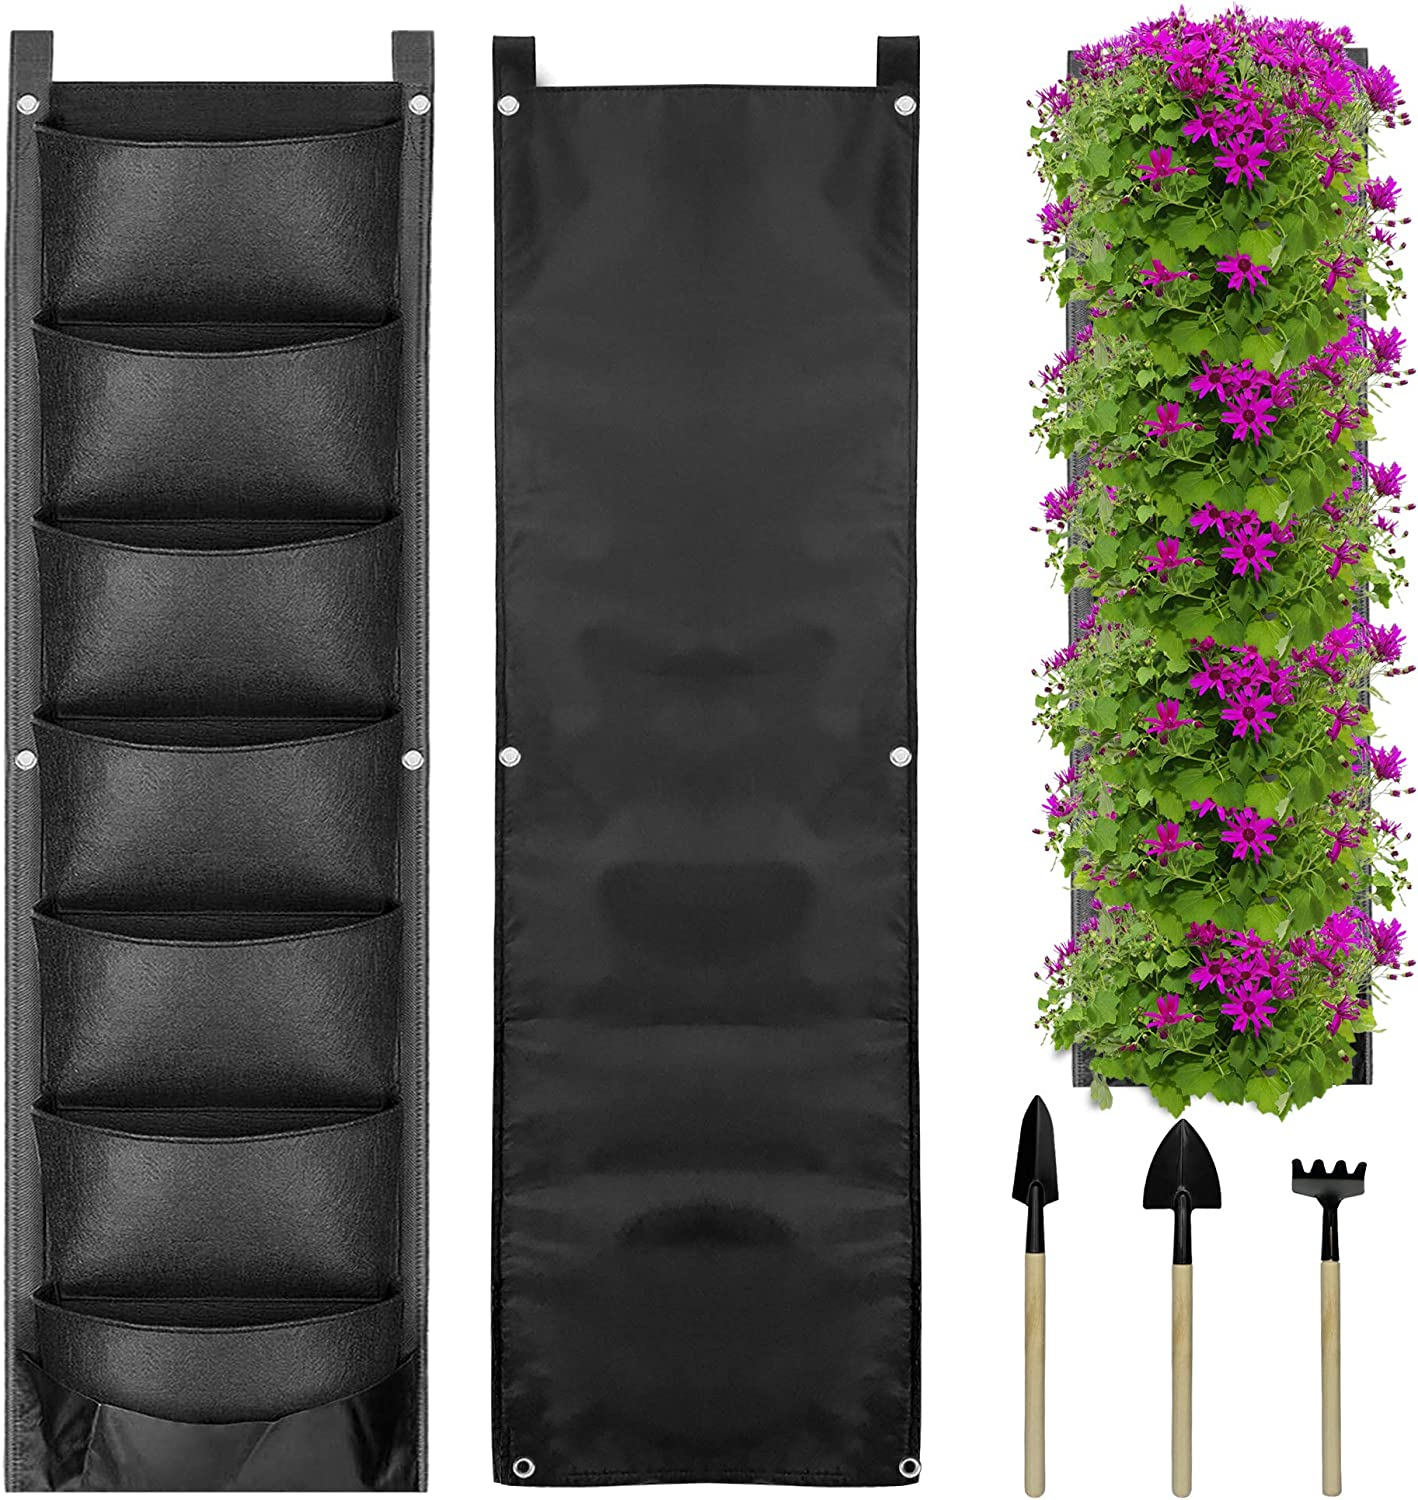 TBS Vertical Hanging Garden Planter with 7 Pockets, Indoor and Outdoor Gardening Wall Planter, Waterproof Planting Bags with 3 Piece Garden Tool Set for Flowers Succulent Transplanting